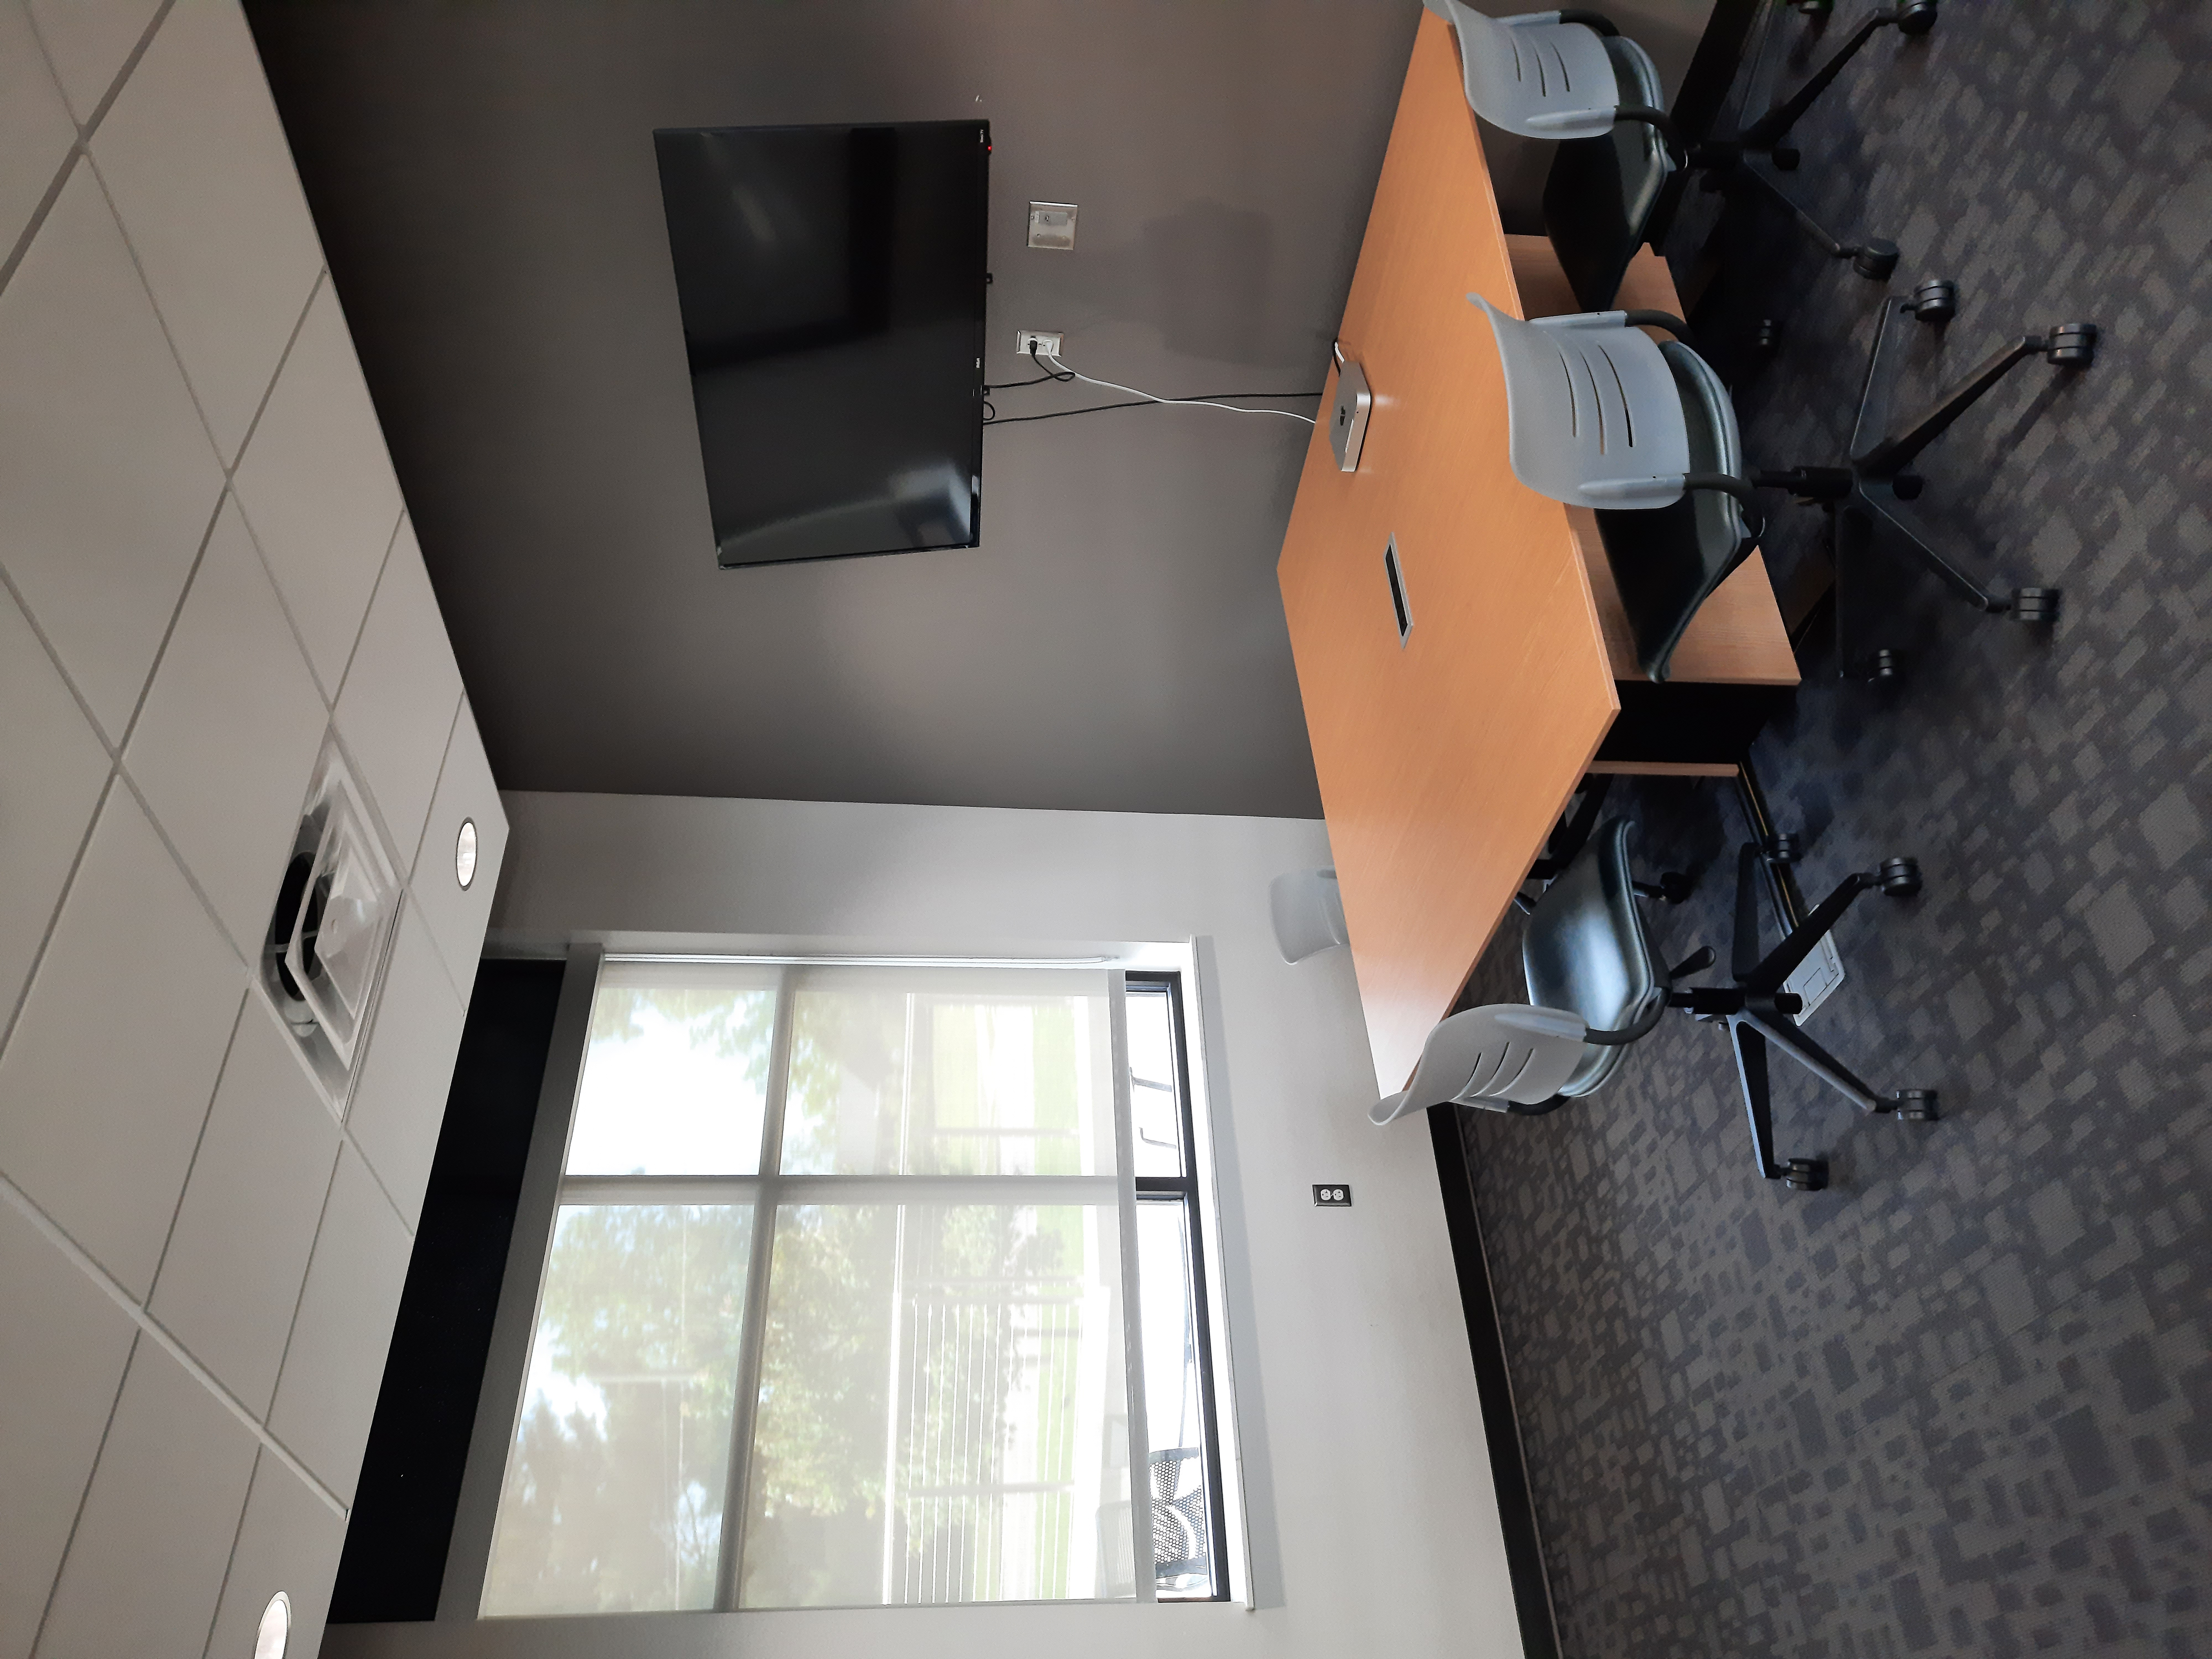 Meeting room with one window. There are 6 chairs around a table. A tv is on the wall.